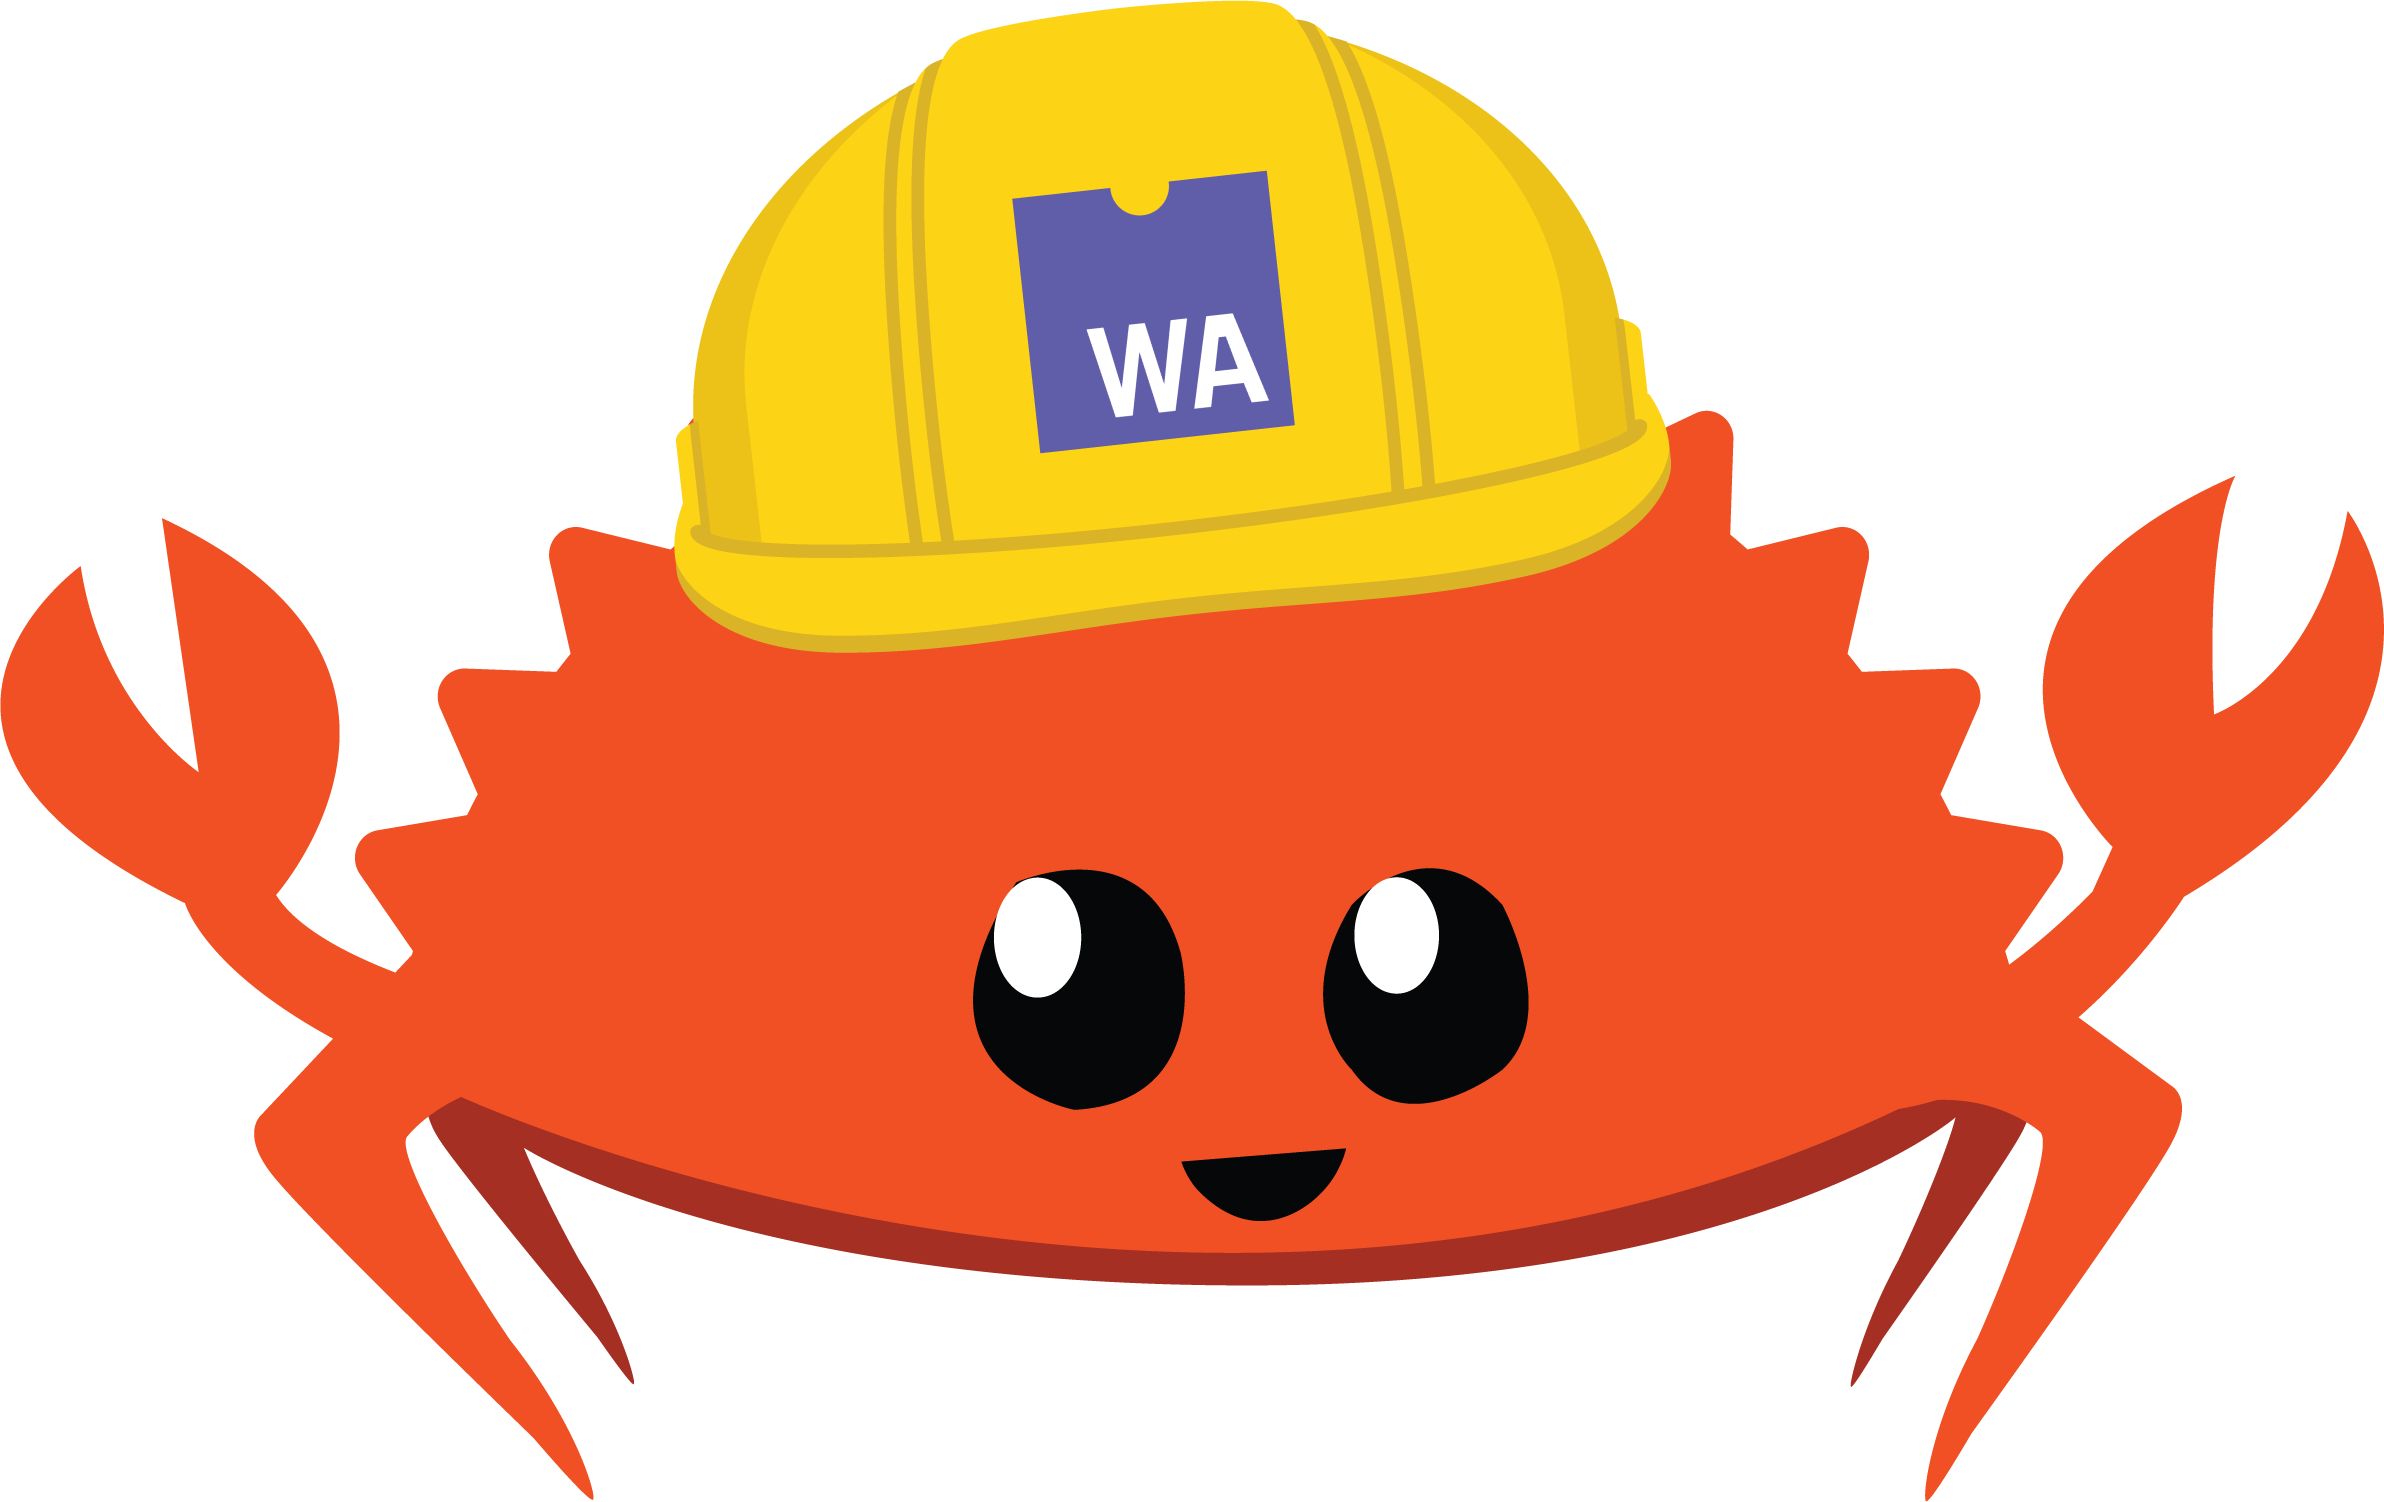 Ferris wearing a construction helmet with a Wasm logo on it.